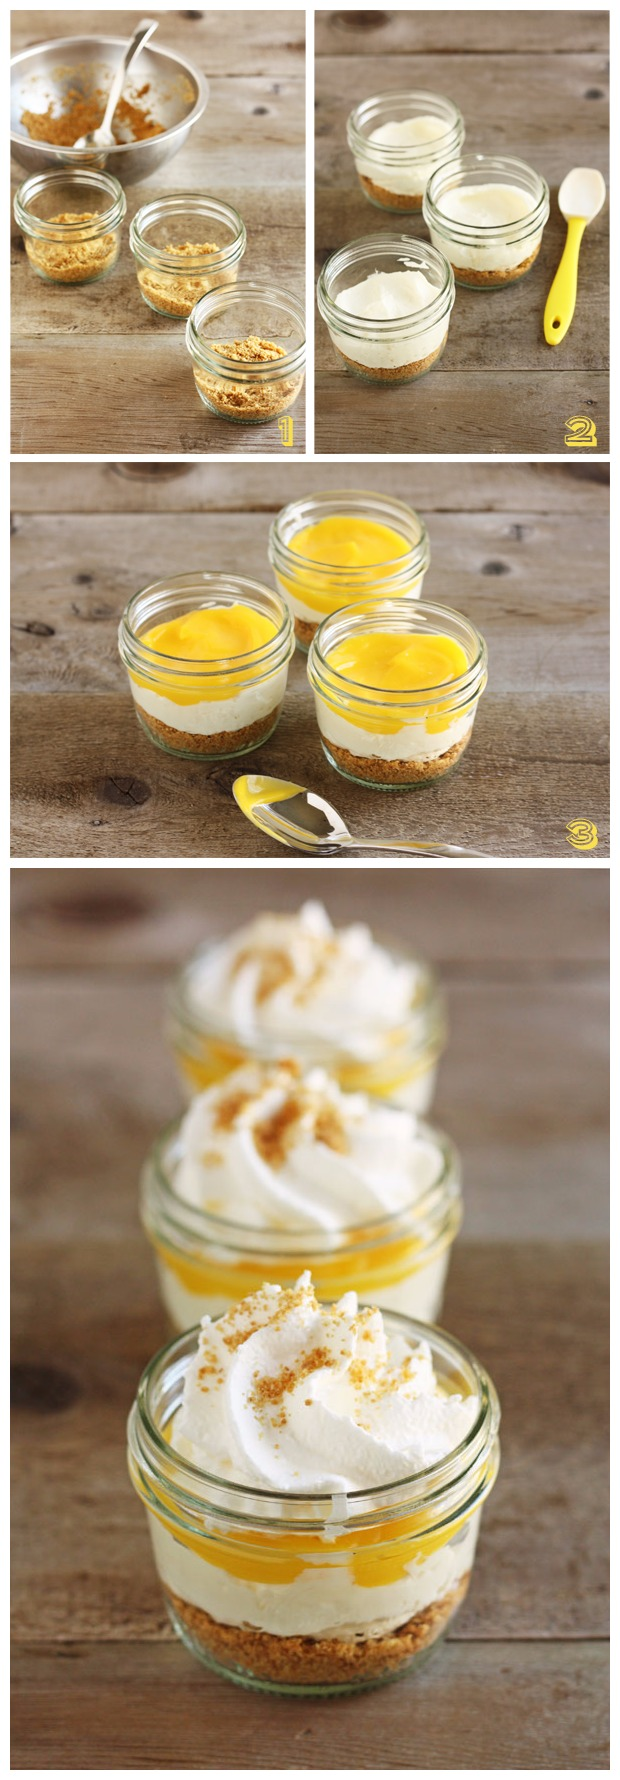 No-Bake Lemon Cheese Cake Recipe